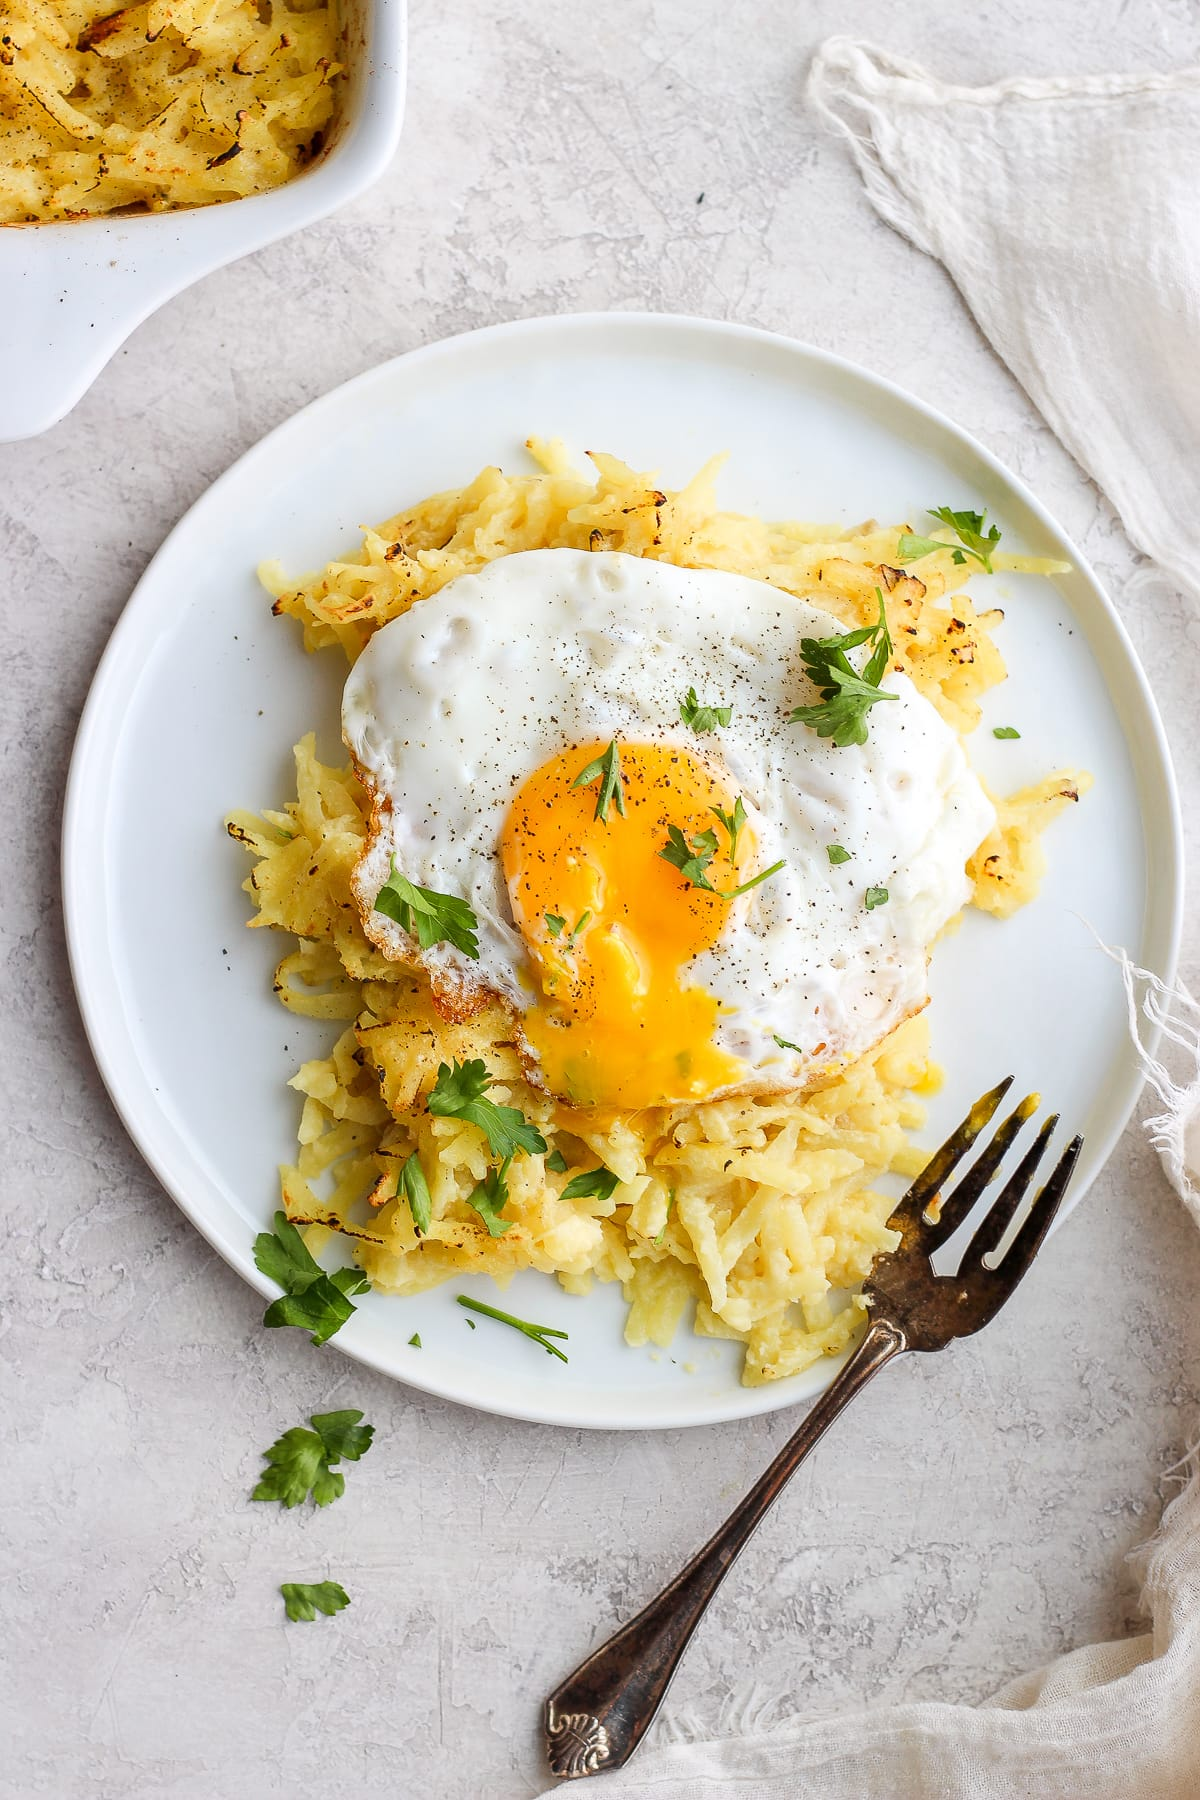 Dairy Free Cheesy Hashbrown Bake - a dreamy dairy free cheesy hash brown bake that is dairy-free and whole30! Perfect for Sunday morning brunch! #dairyfree #whole30 #cheesyhashbrowns #cheesyhasbrownbake #dairyfreerecies #healthybreakfast #breakfastrecipes